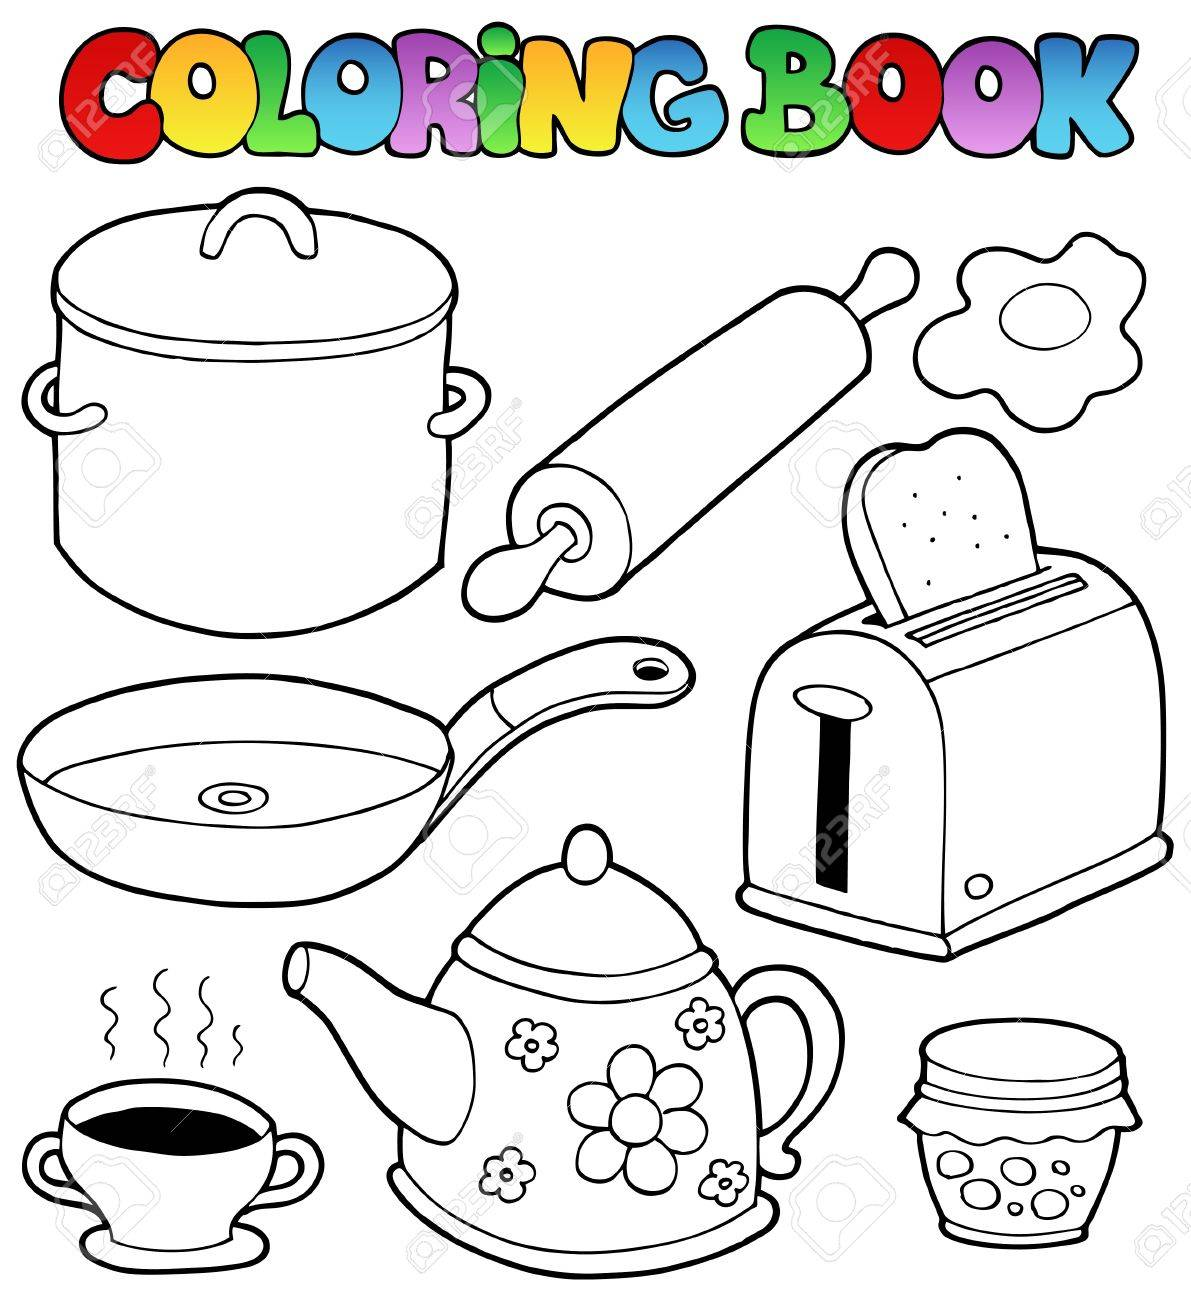 Coloring book domestic collection illustration. Stock Vector - 10780636